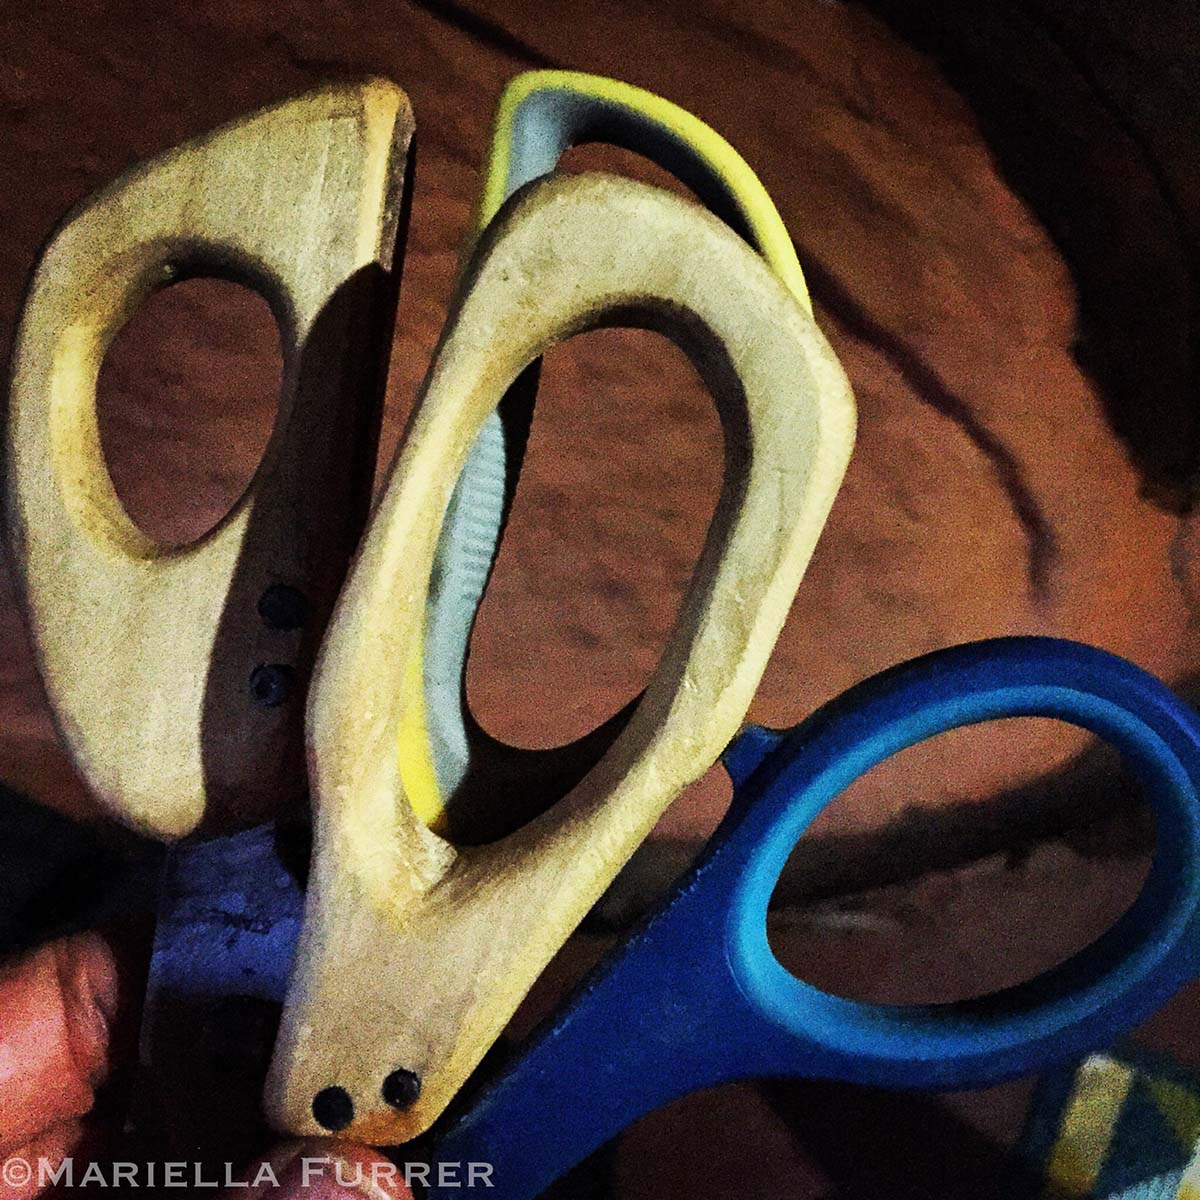 Instead of throwing away broken scissors, Saba gets a Turkana nomad to carve wooden handles for them.